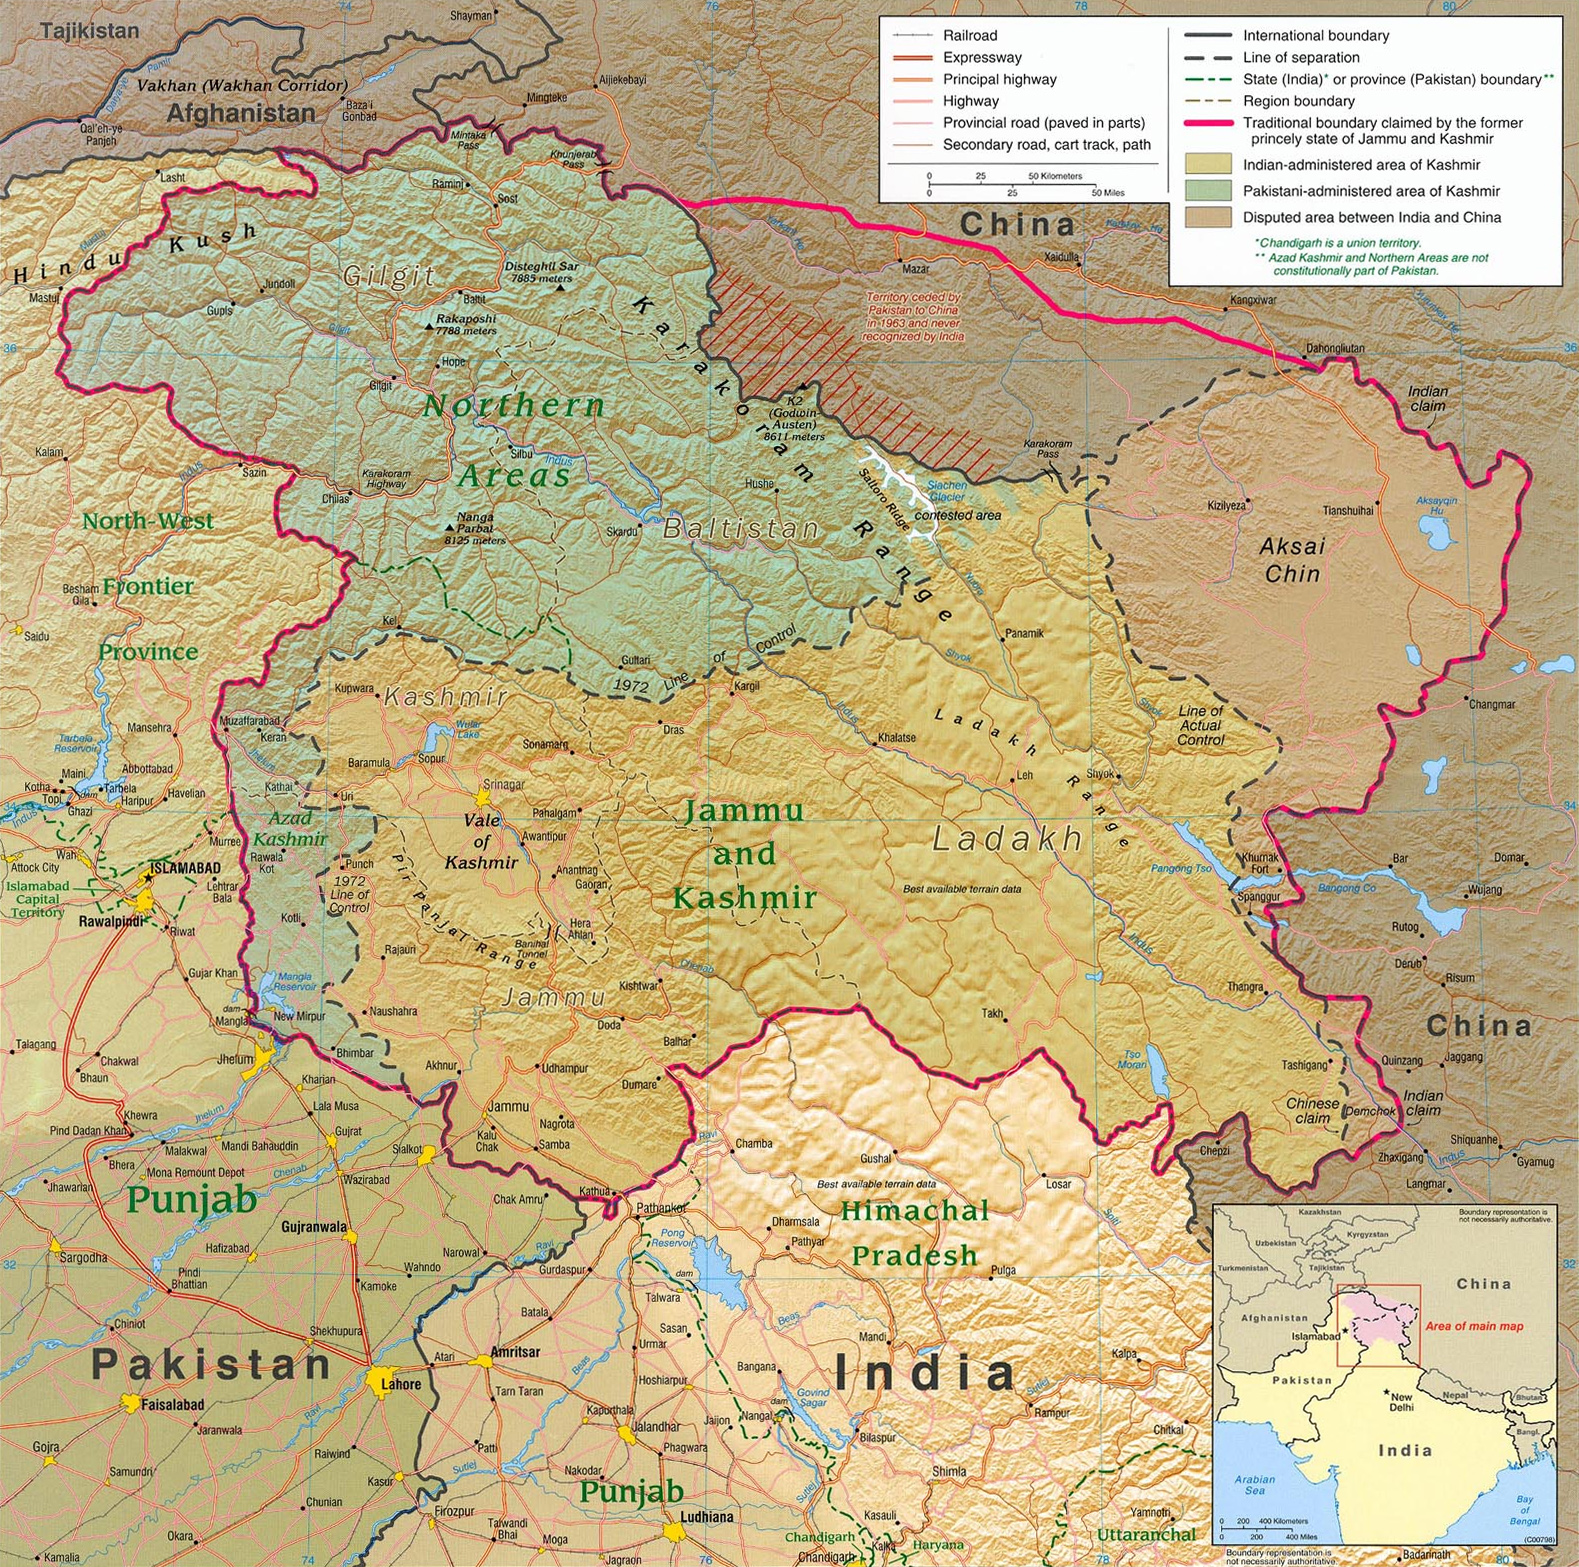 https://upload.wikimedia.org/wikipedia/commons/thumb/6/68/Kashmir_region_2004.jpg/800px-Kashmir_region_2004.jpg